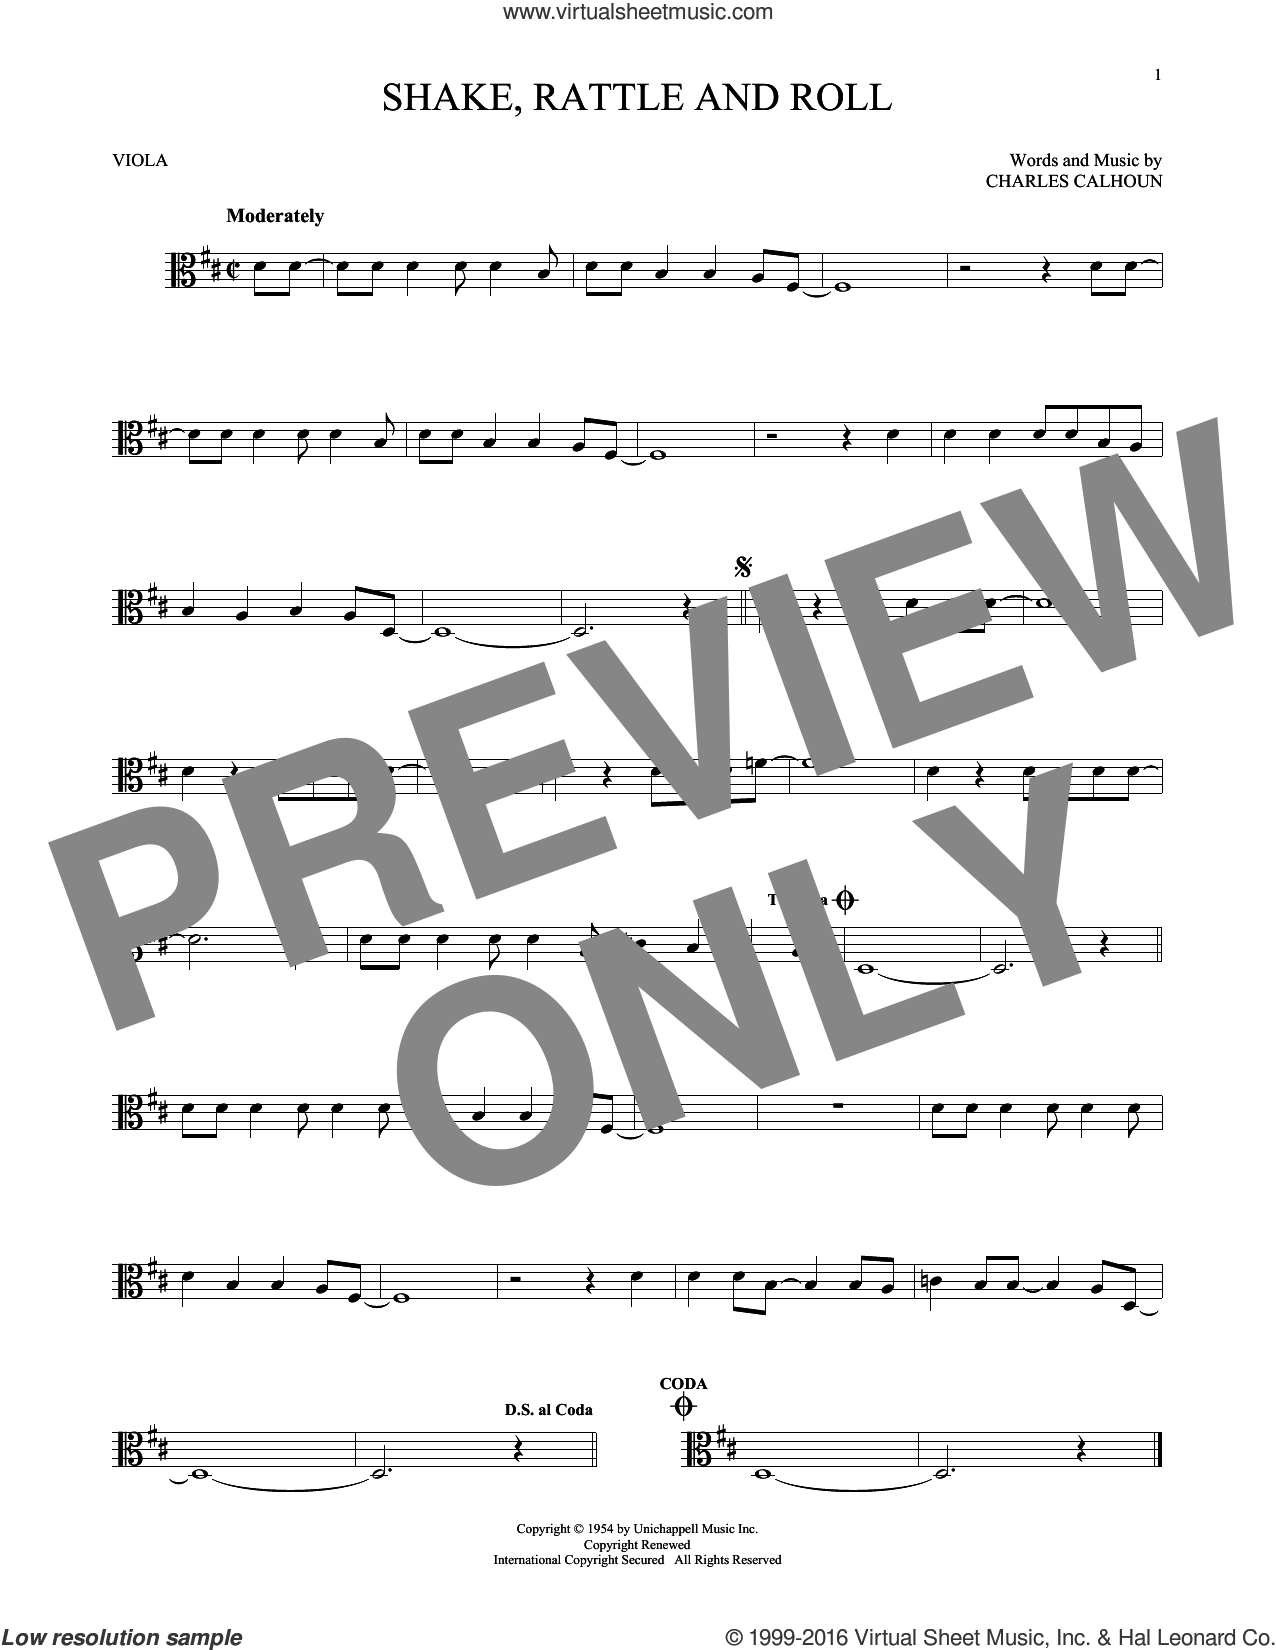 Shake, Rattle And Roll sheet music for viola solo by Bill Haley & His Comets, Arthur Conley and Charles Calhoun, intermediate skill level